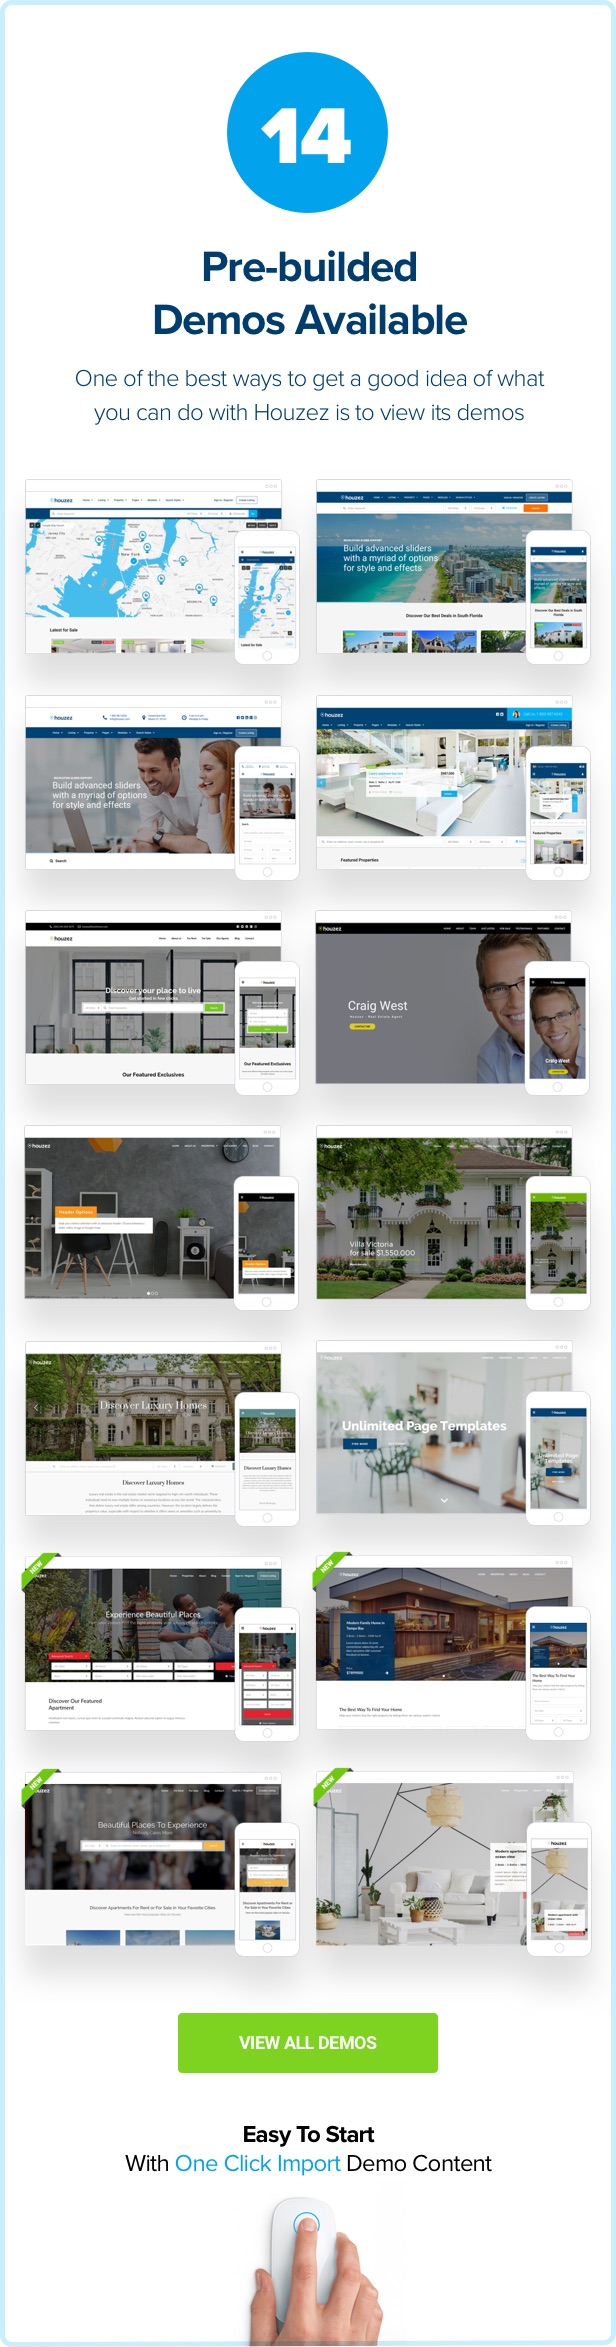 houzez demo 1 6 3 - Houzez – Real Estate WordPress Theme